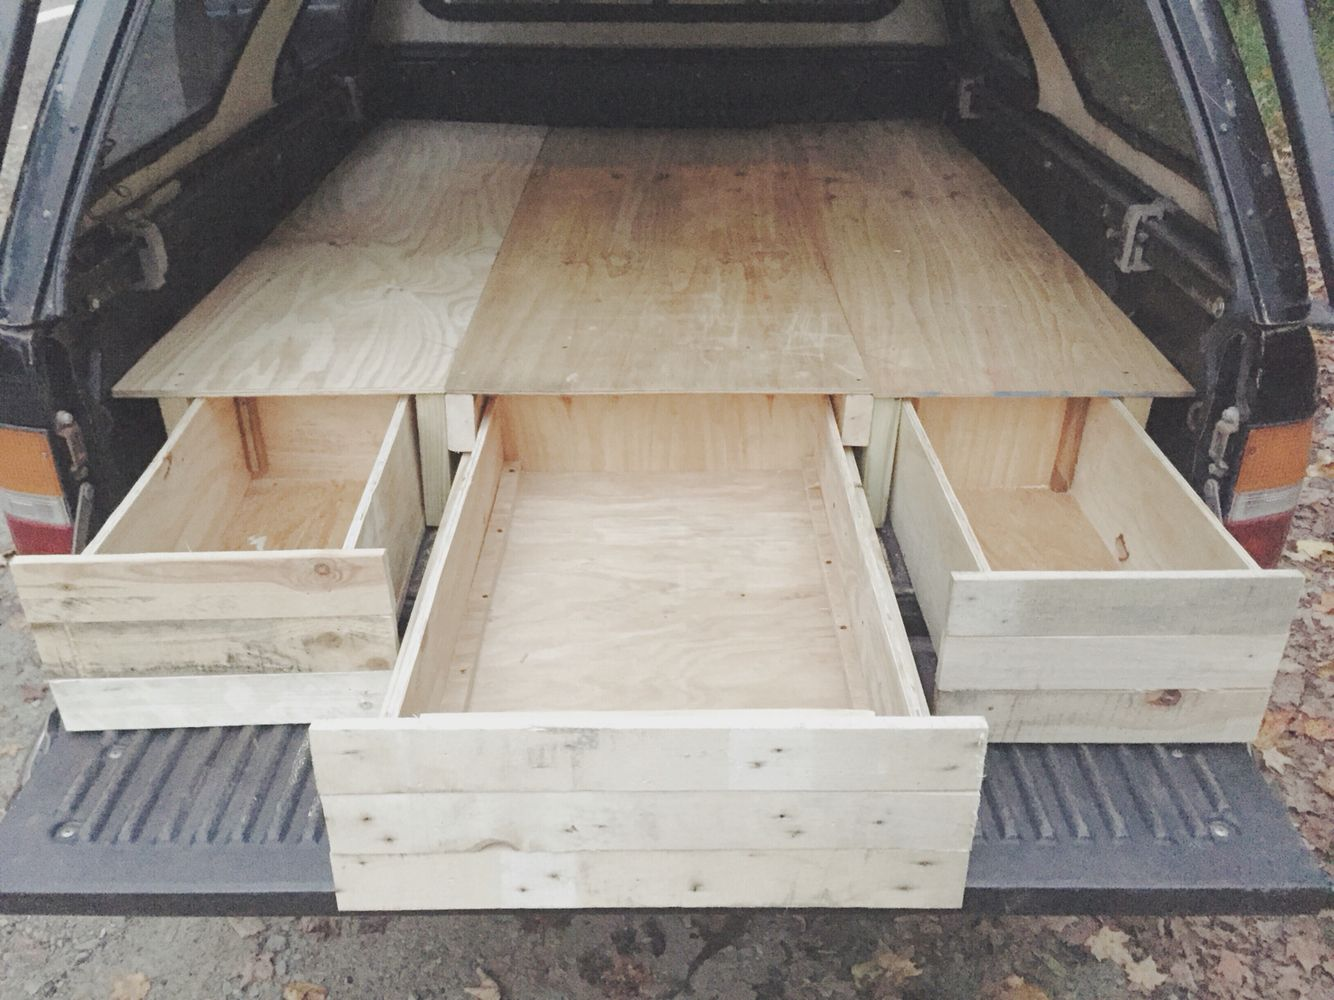 truck bed camper with drawers made completely from reclaimed wood and screws